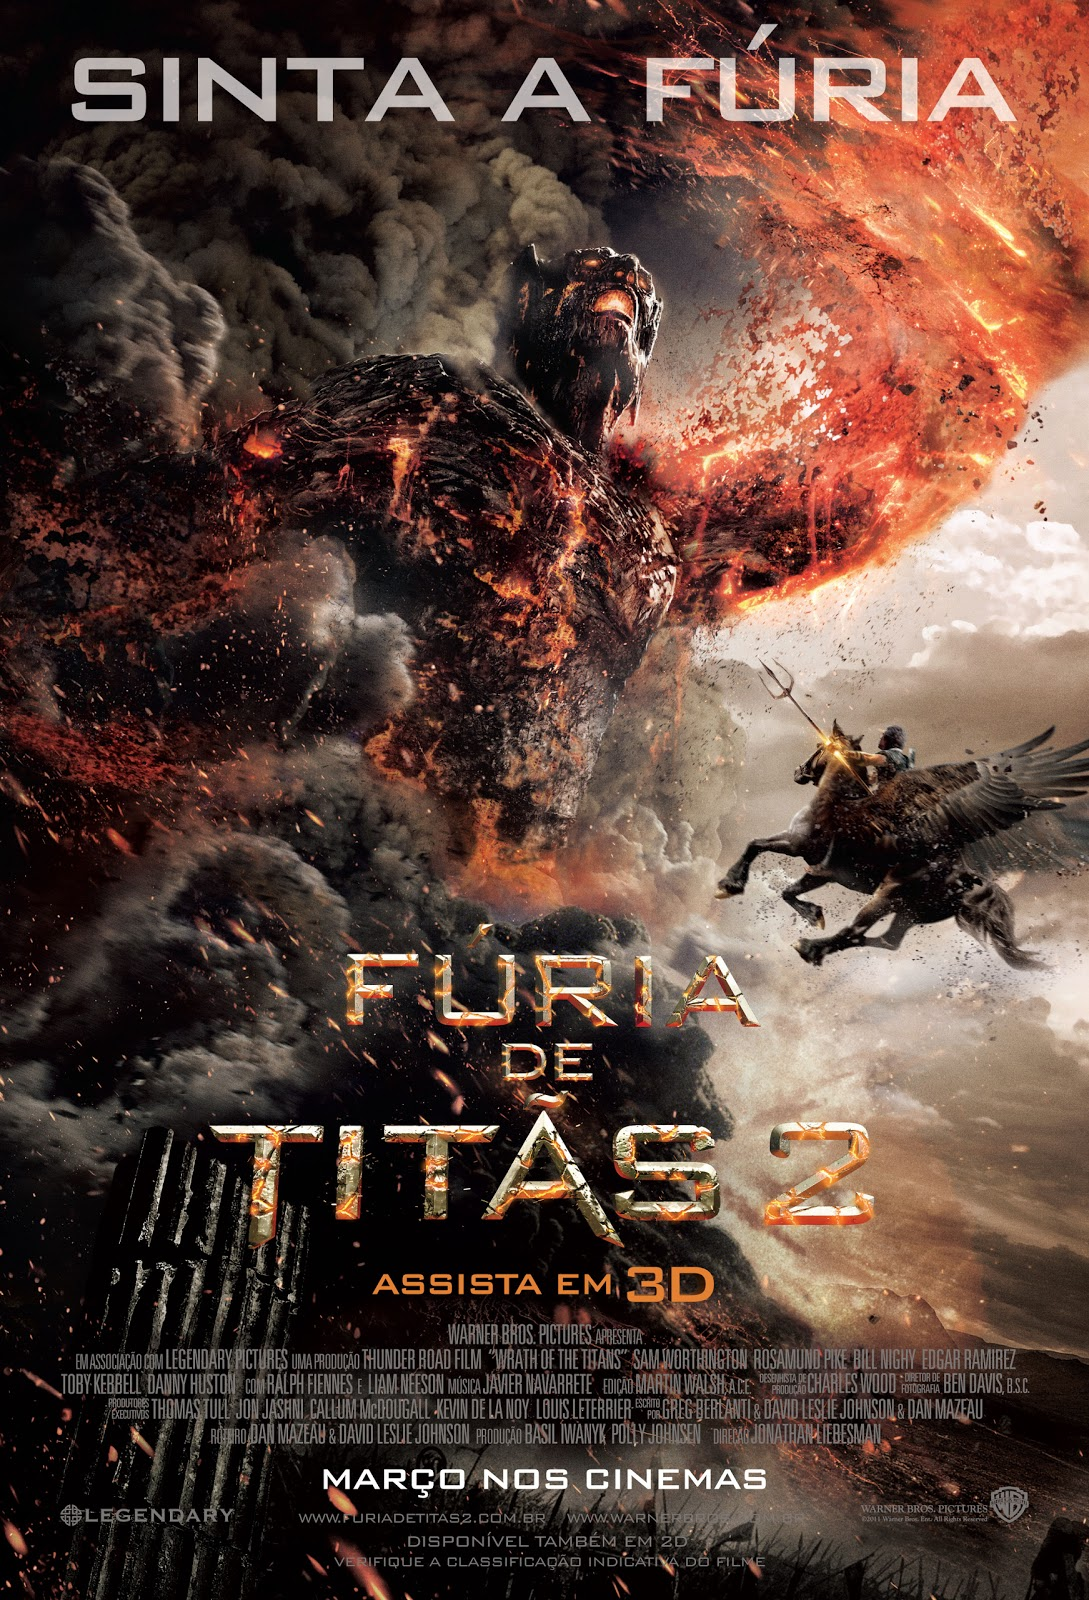 Imagens Fúria de Titãs 2 Torrent Dublado 1080p 720p BluRay Download